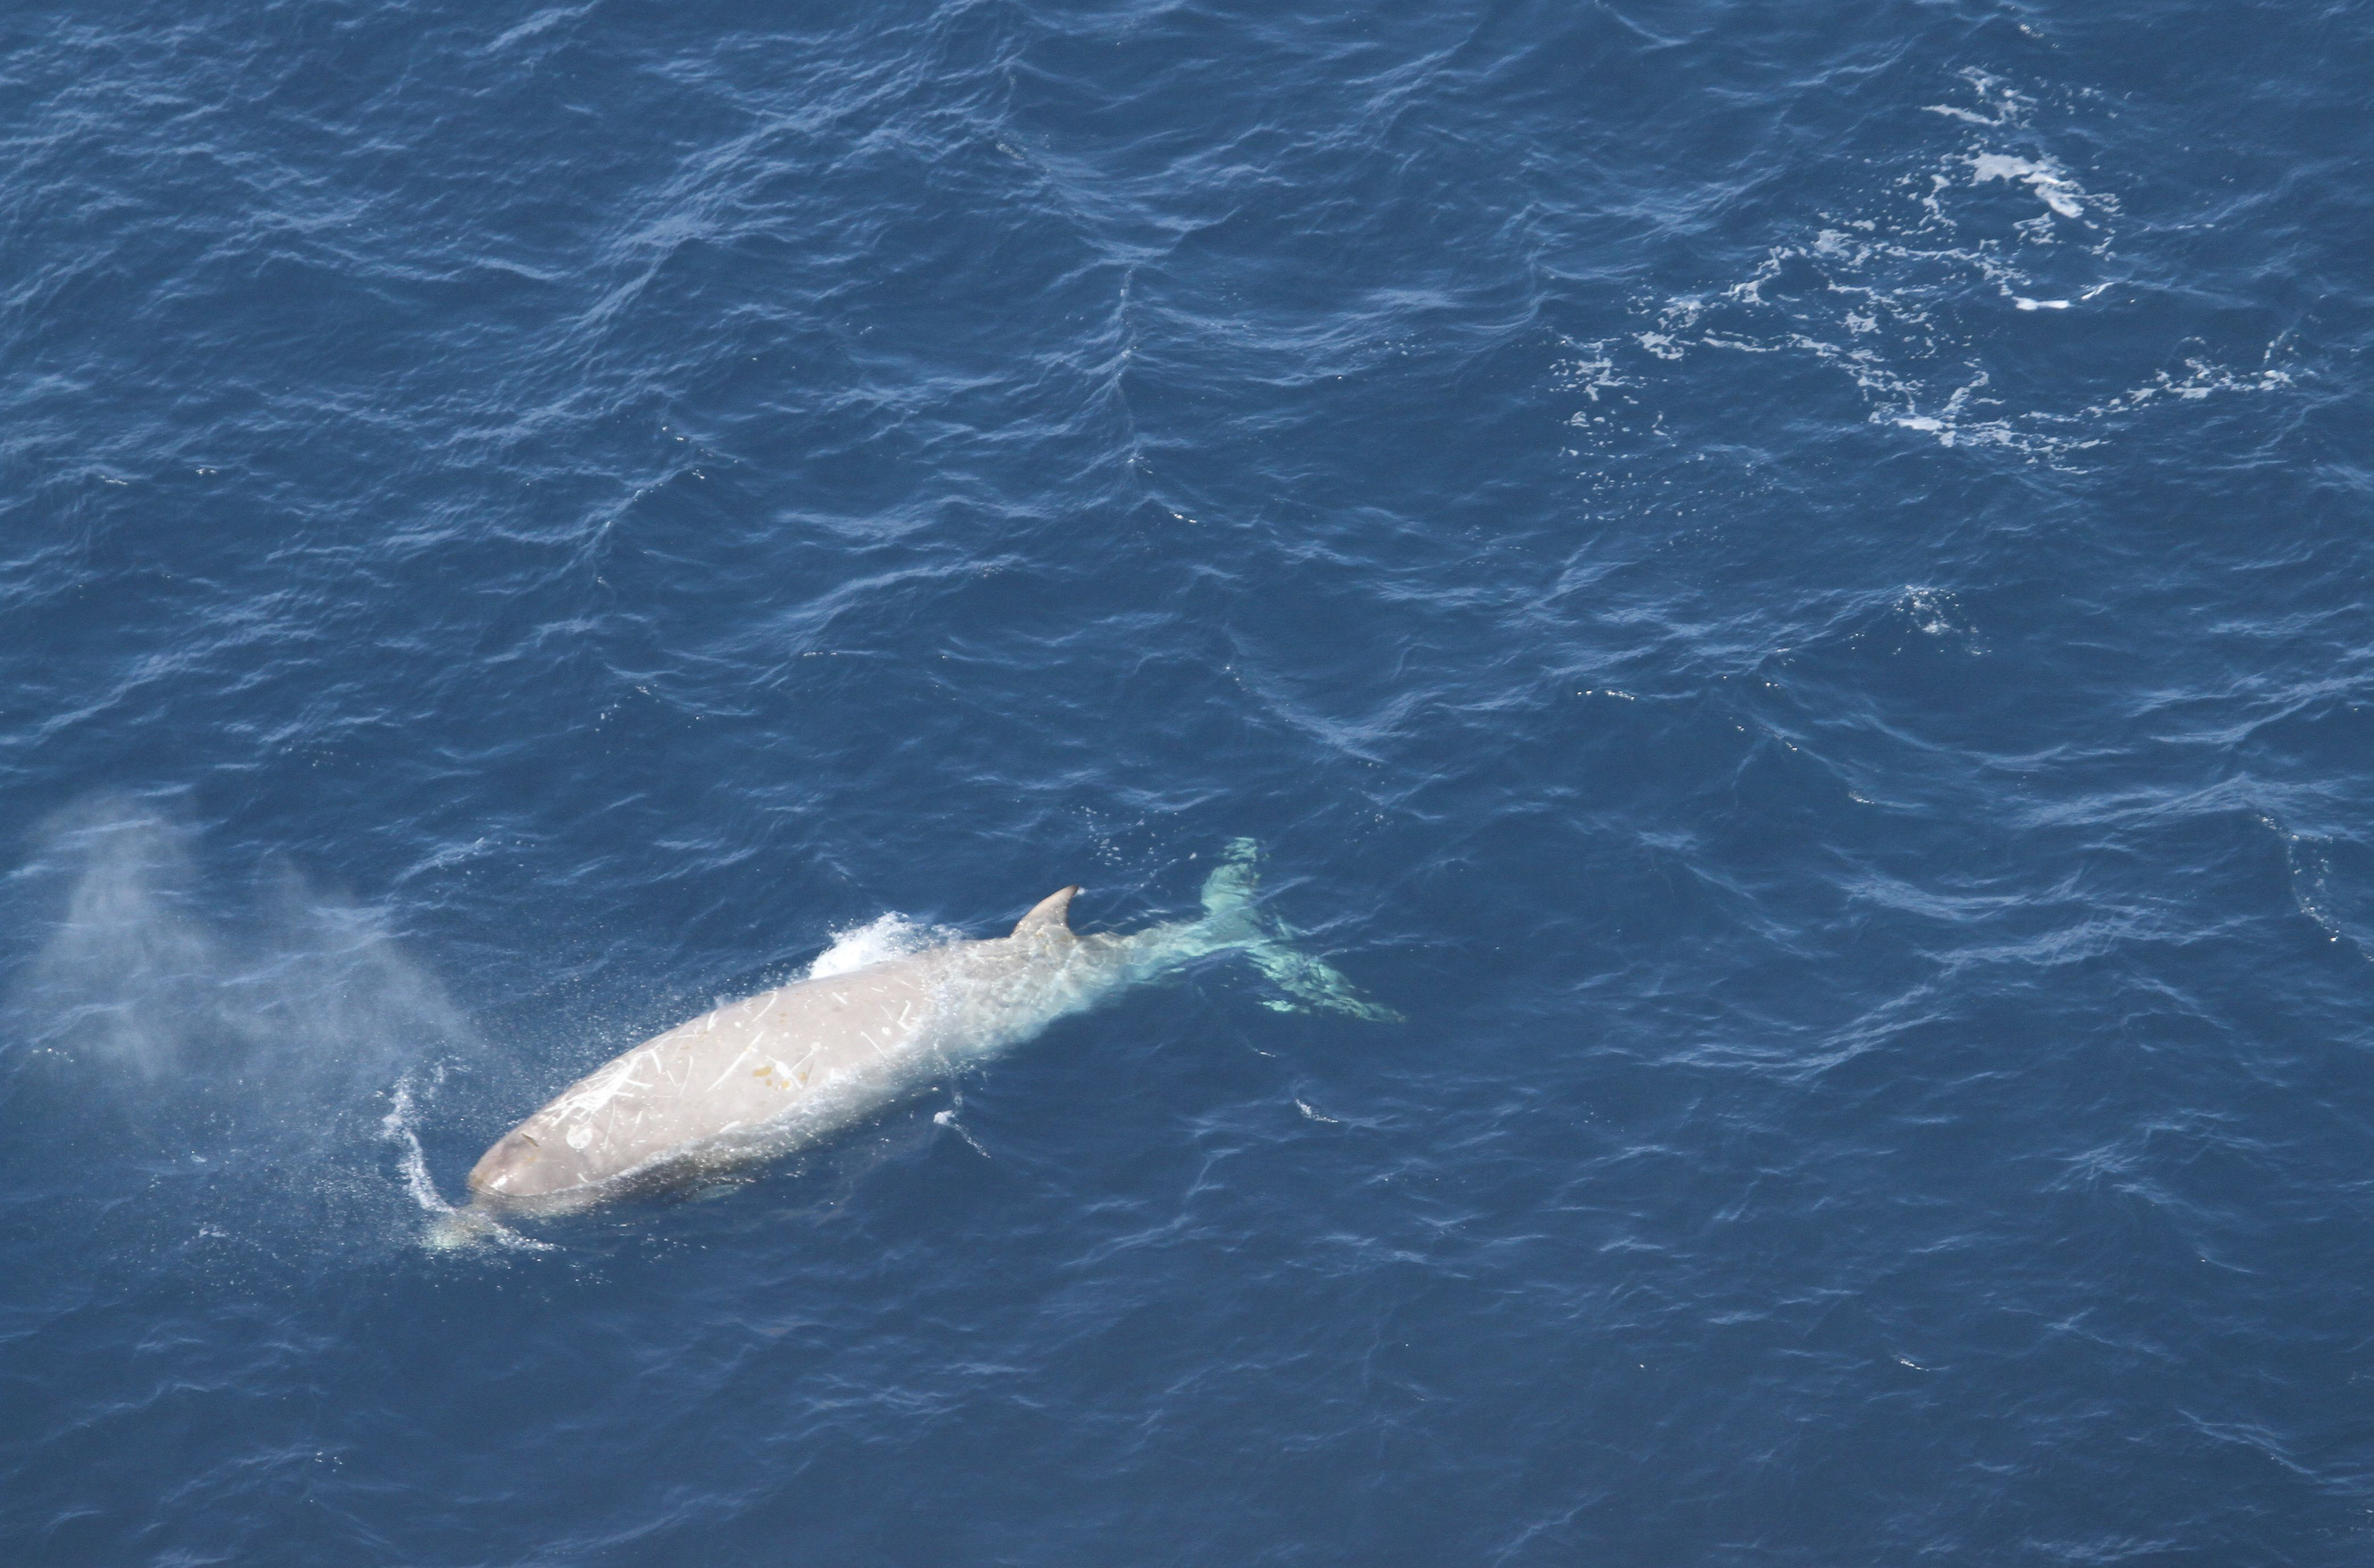 Southern bottle-nosed whales prefer the open seas and are only seldom found near the coast.